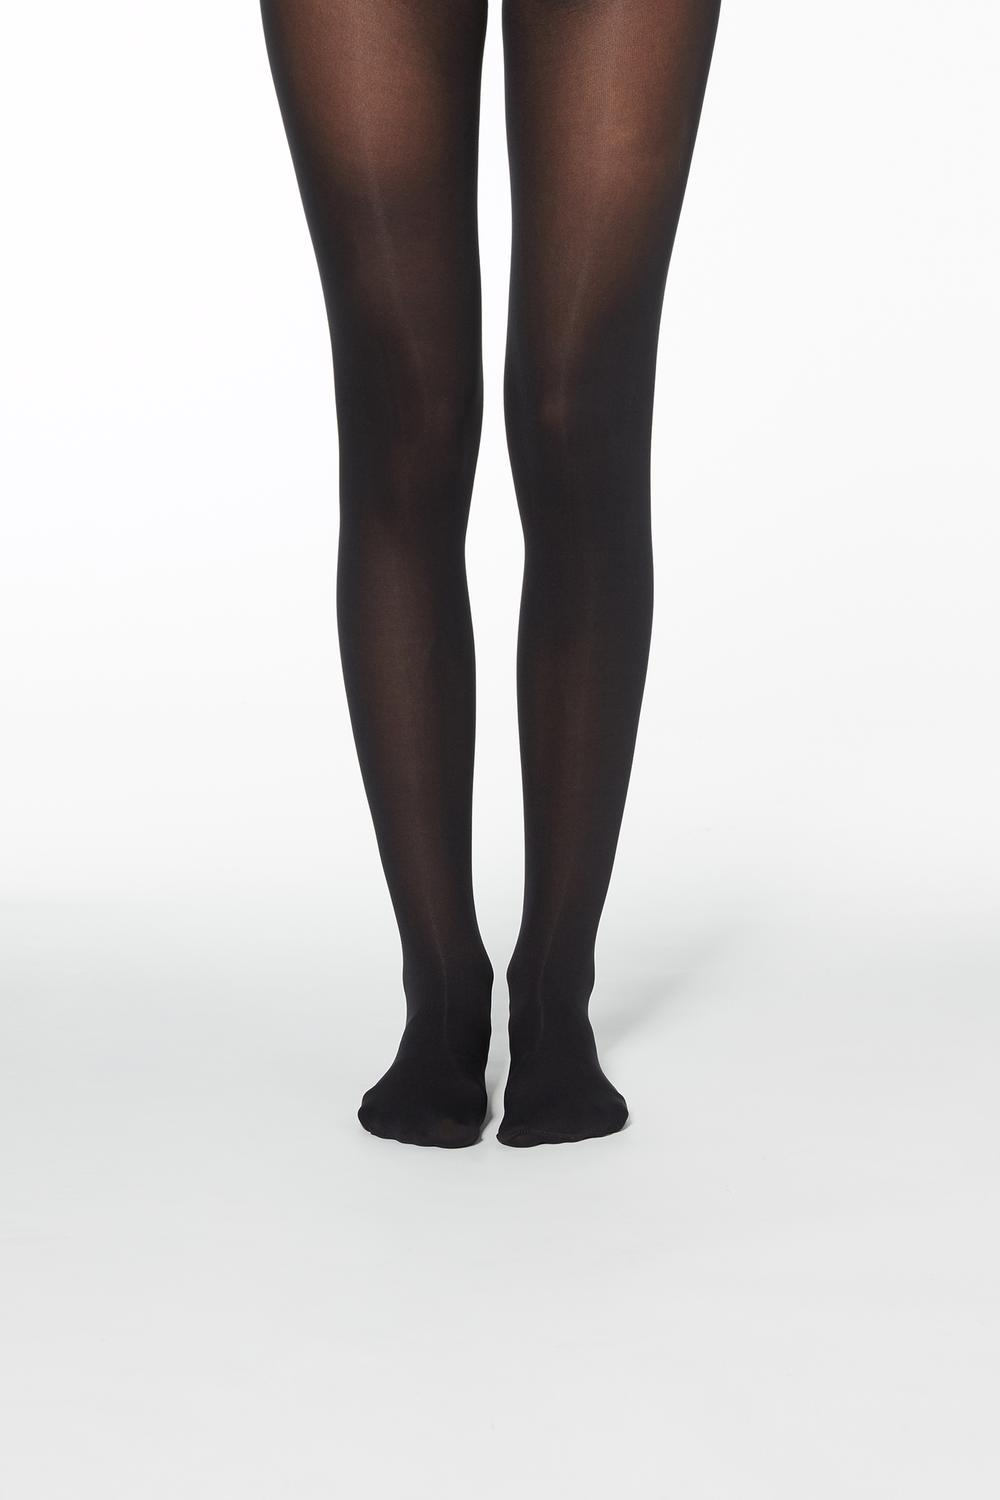 Collants Sem Costura 50 Den